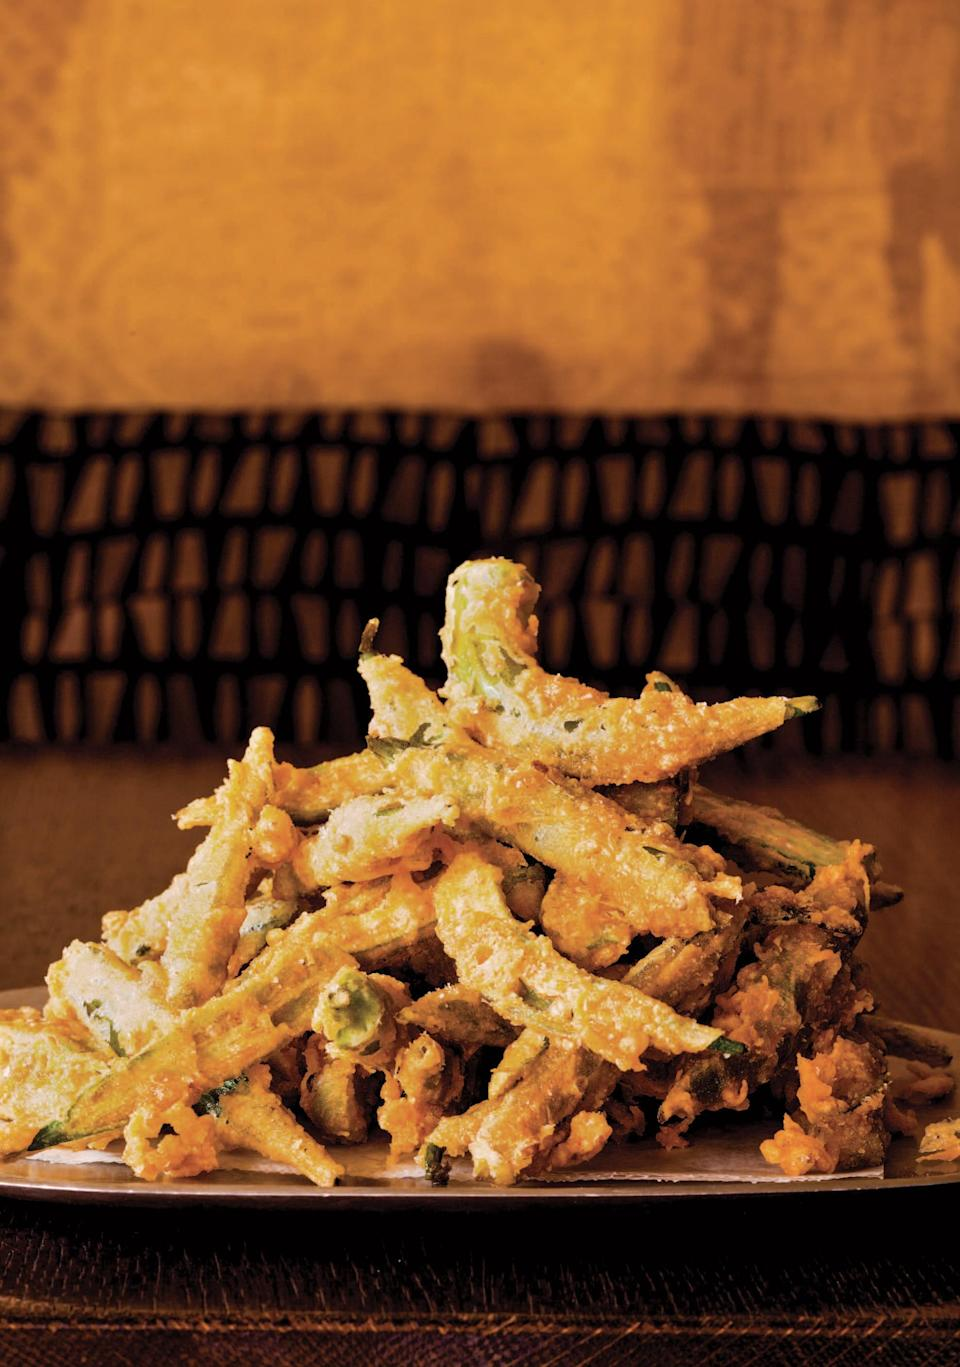 "These remarkably crispy okra fries from <a href=""https://bookshop.org/books/between-harlem-and-heaven-afro-asian-american-cooking-for-big-nights-weeknights-and-every-day/9781250108715"" rel=""nofollow noopener"" target=""_blank"" data-ylk=""slk:Between Harlem and Heaven"" class=""link rapid-noclick-resp""><em>Between Harlem and Heaven</em></a> start with a long soak in egg and a light coating of rice flour, cornstarch, and smoked paprika before they hit the hot oil. <a href=""https://www.epicurious.com/recipes/food/views/okra-fries?mbid=synd_yahoo_rss"" rel=""nofollow noopener"" target=""_blank"" data-ylk=""slk:See recipe."" class=""link rapid-noclick-resp"">See recipe.</a>"